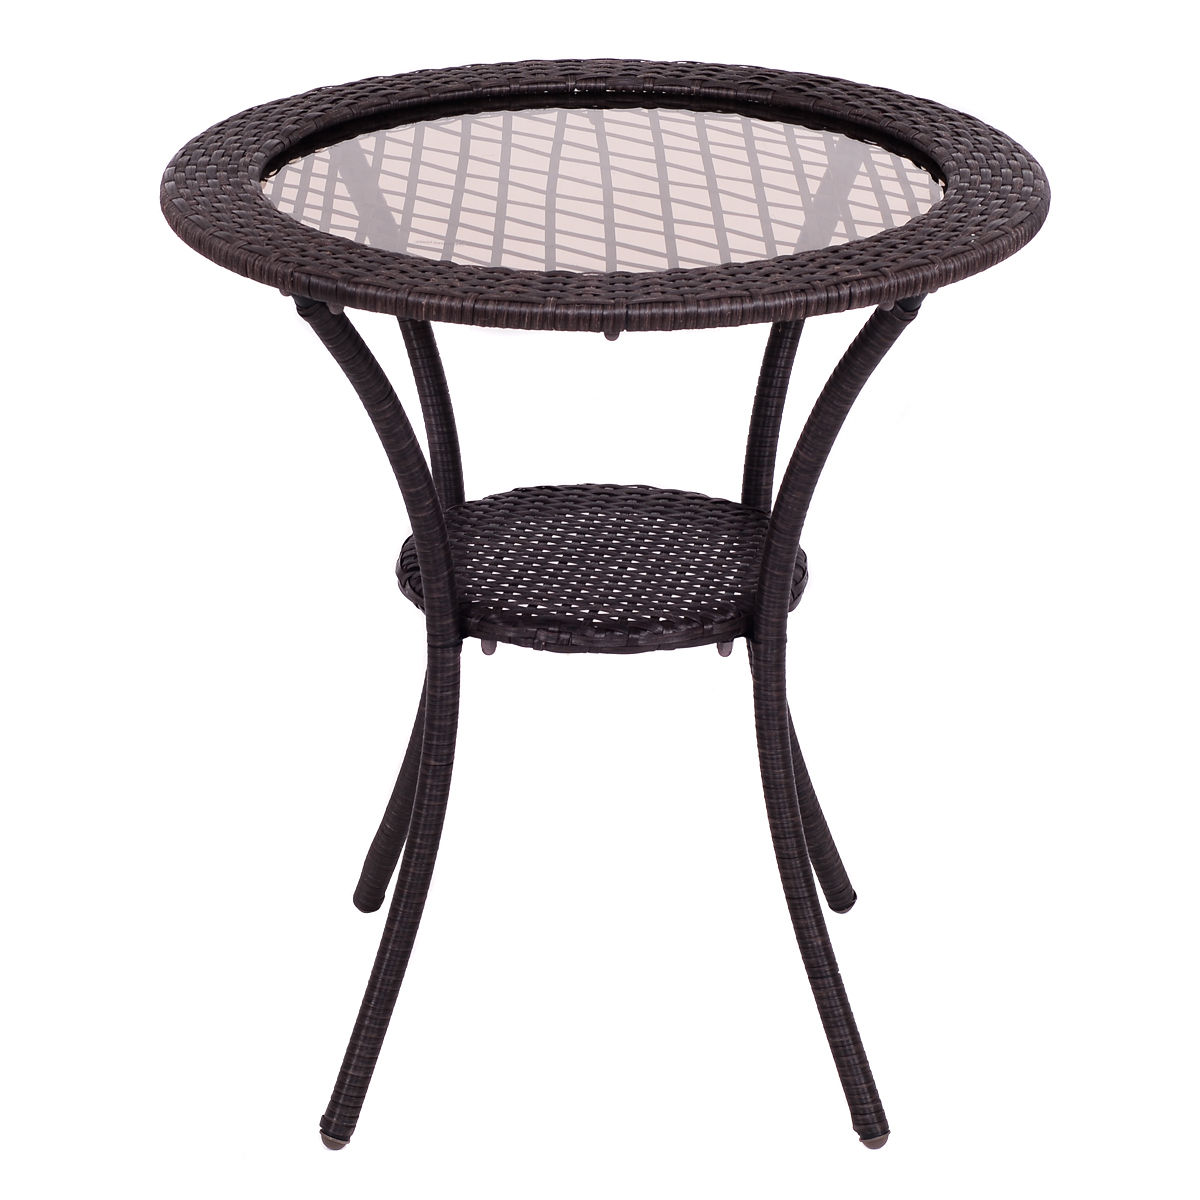 Attrayant Costway Round Rattan Wicker Coffee Table Glass Top Steel Frame Patio Furni  W/Lower Shelf